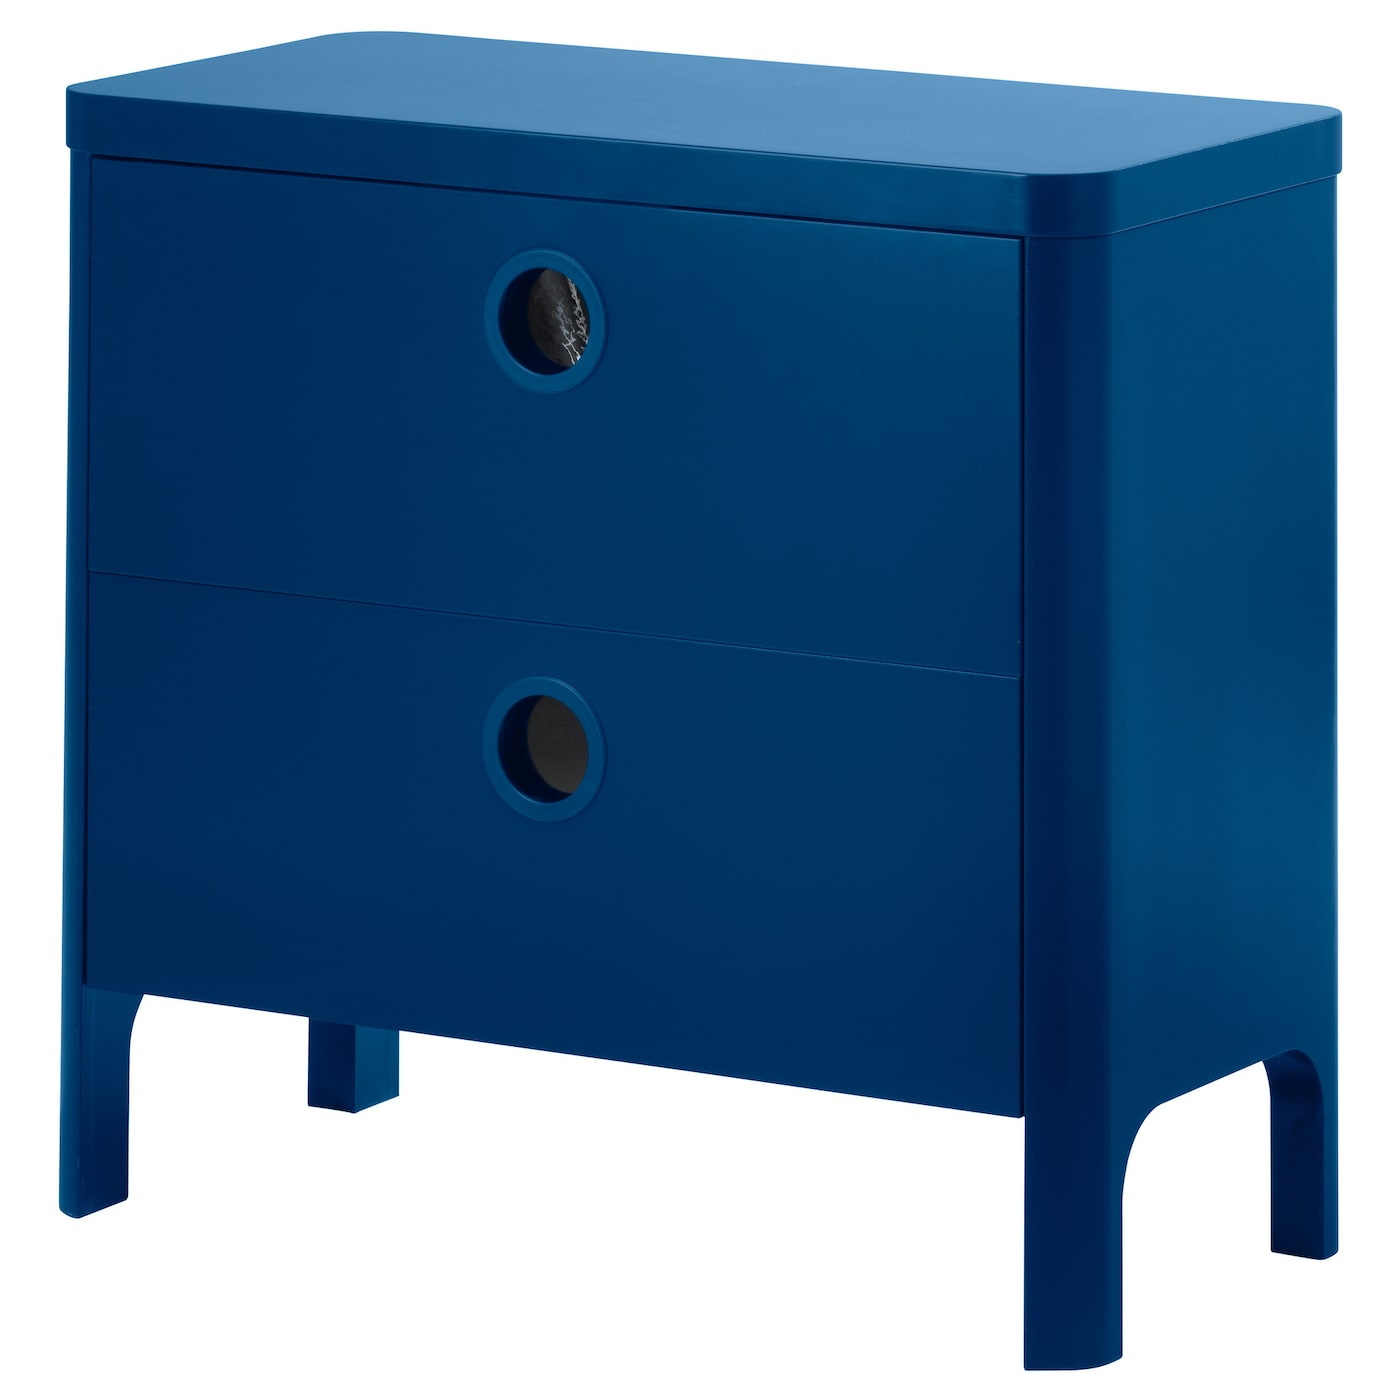 Ikea Busunge Chest Of 2 Drawers Comes With For A Roomy Storage E